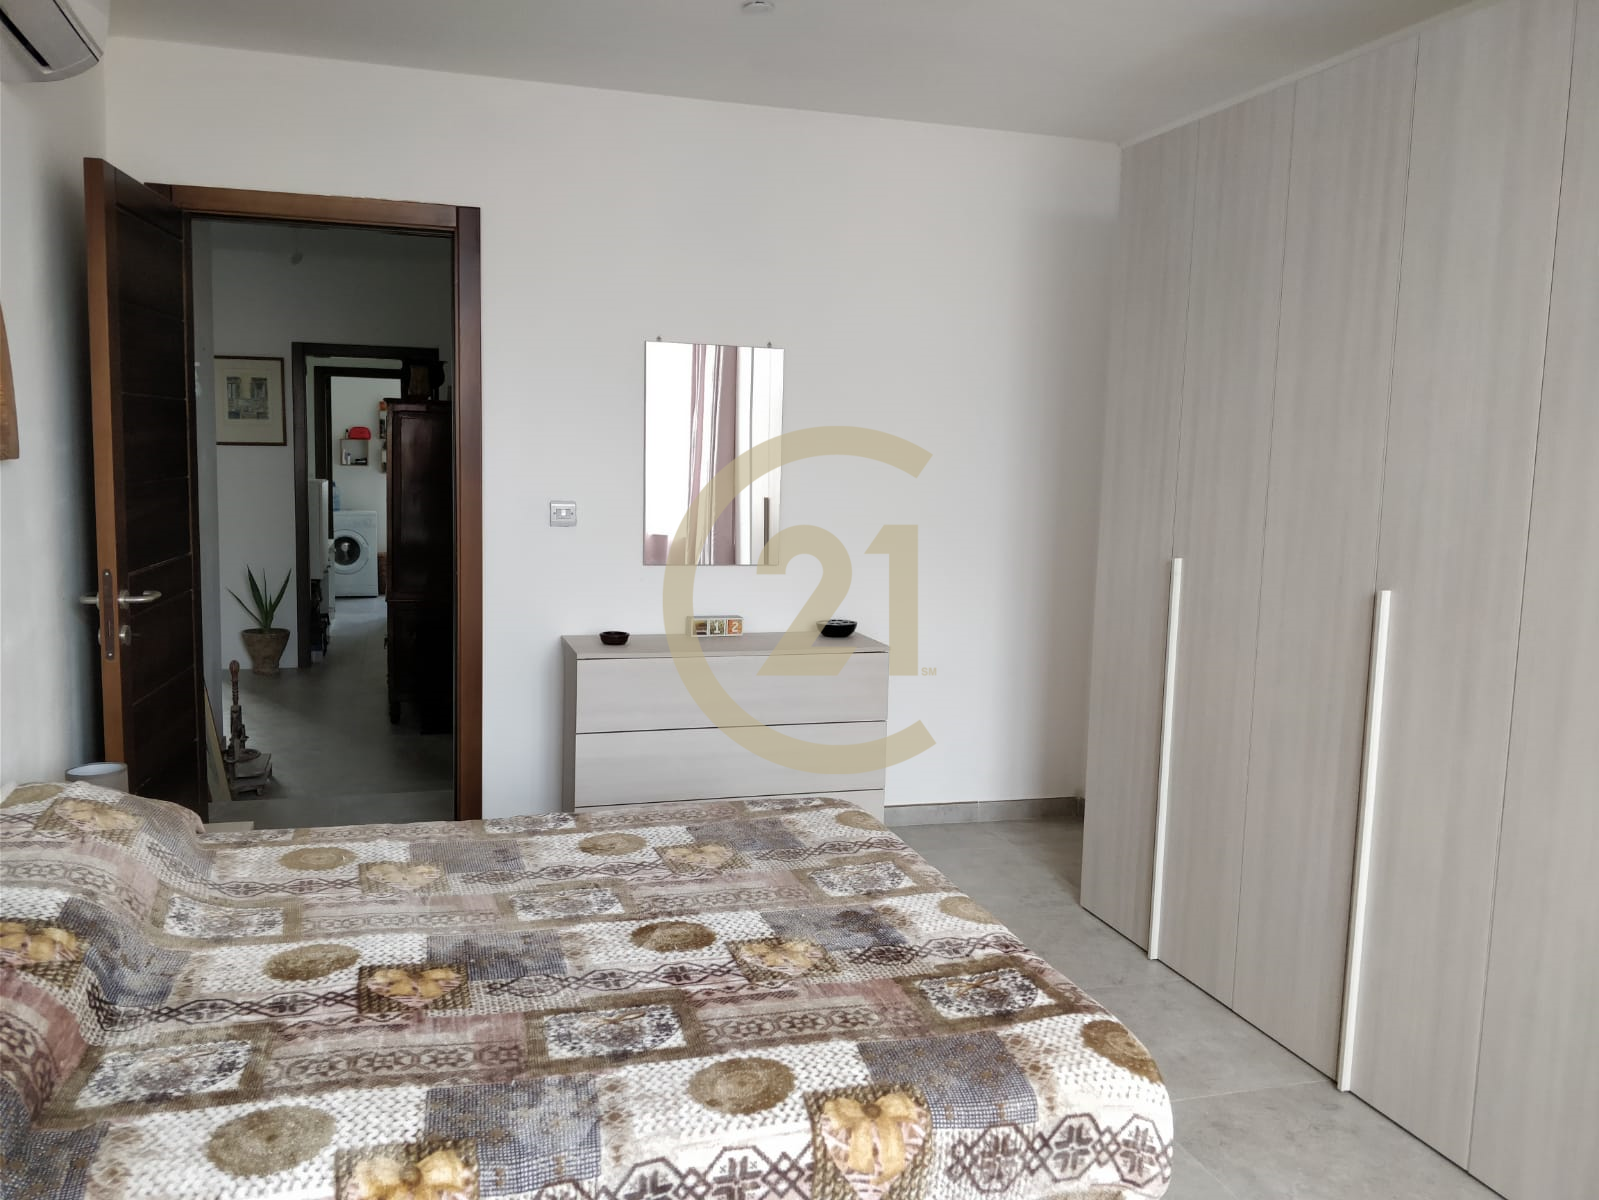 2 Bedroom Apartment For Rent In Swieqi